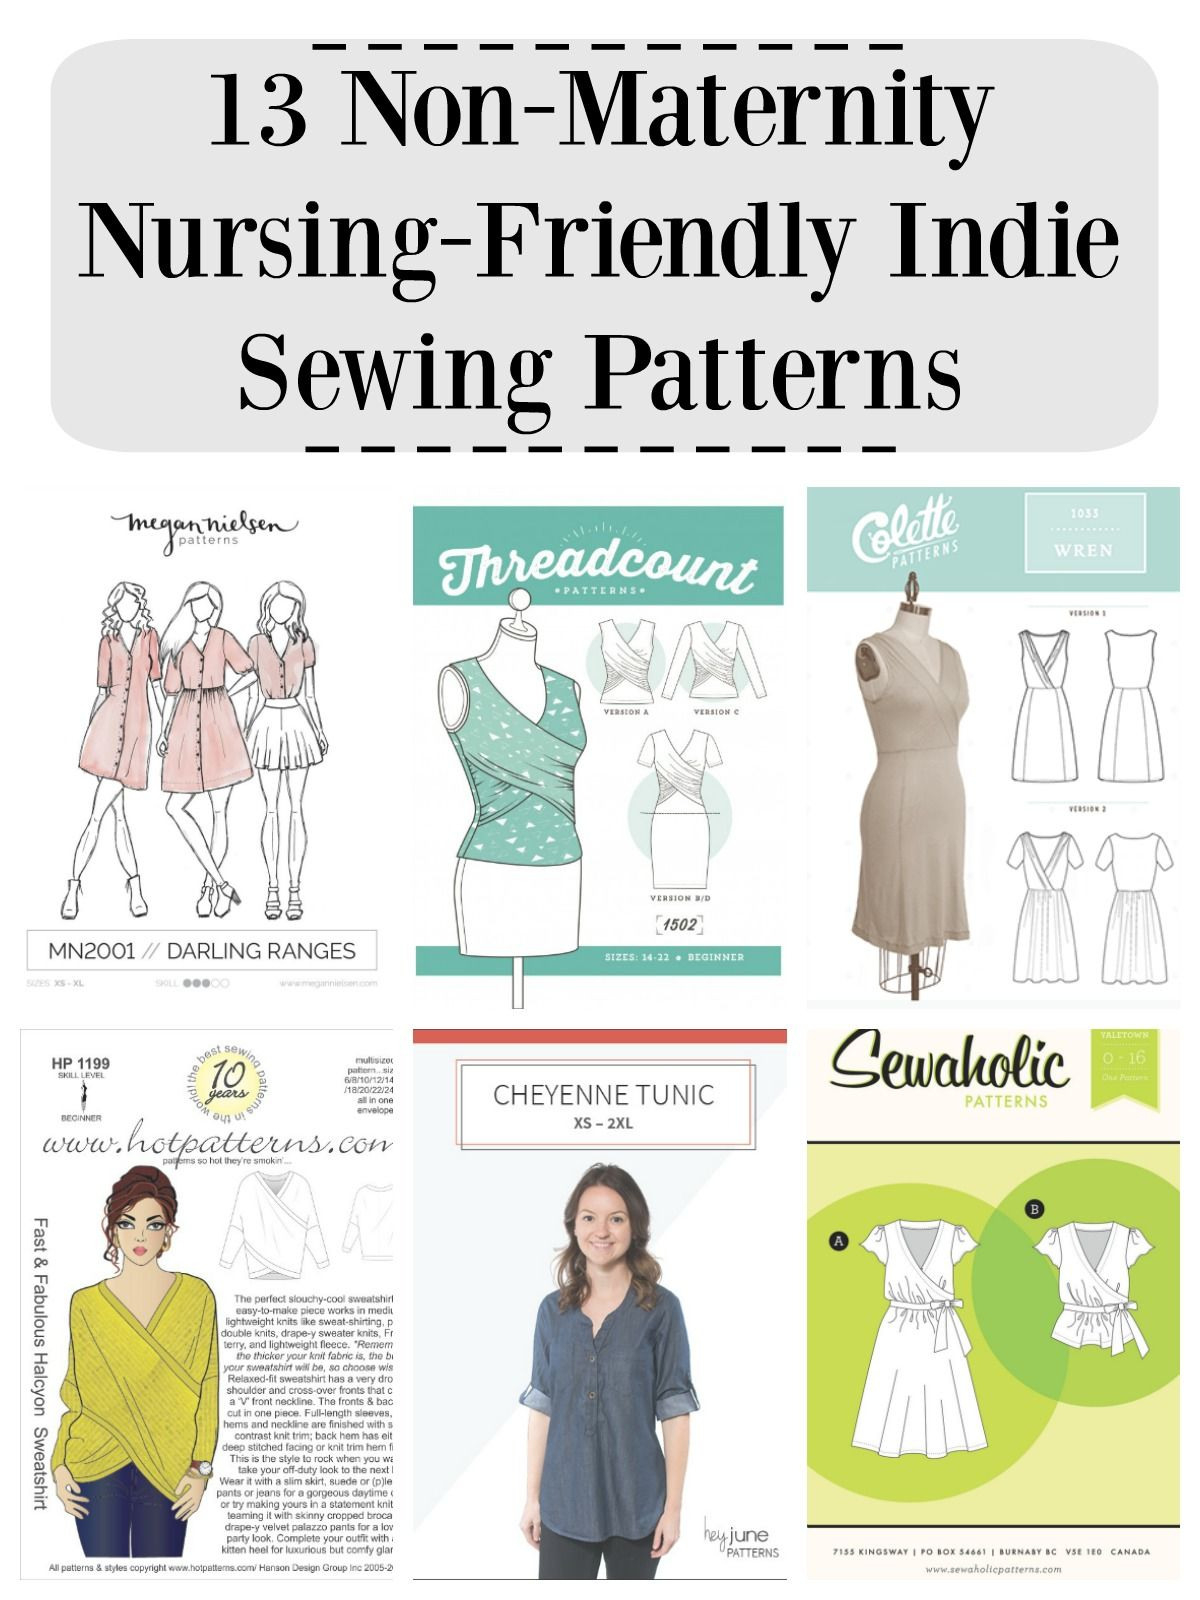 13 Non-Maternity Nursing-Friendly Indie Sewing Patterns